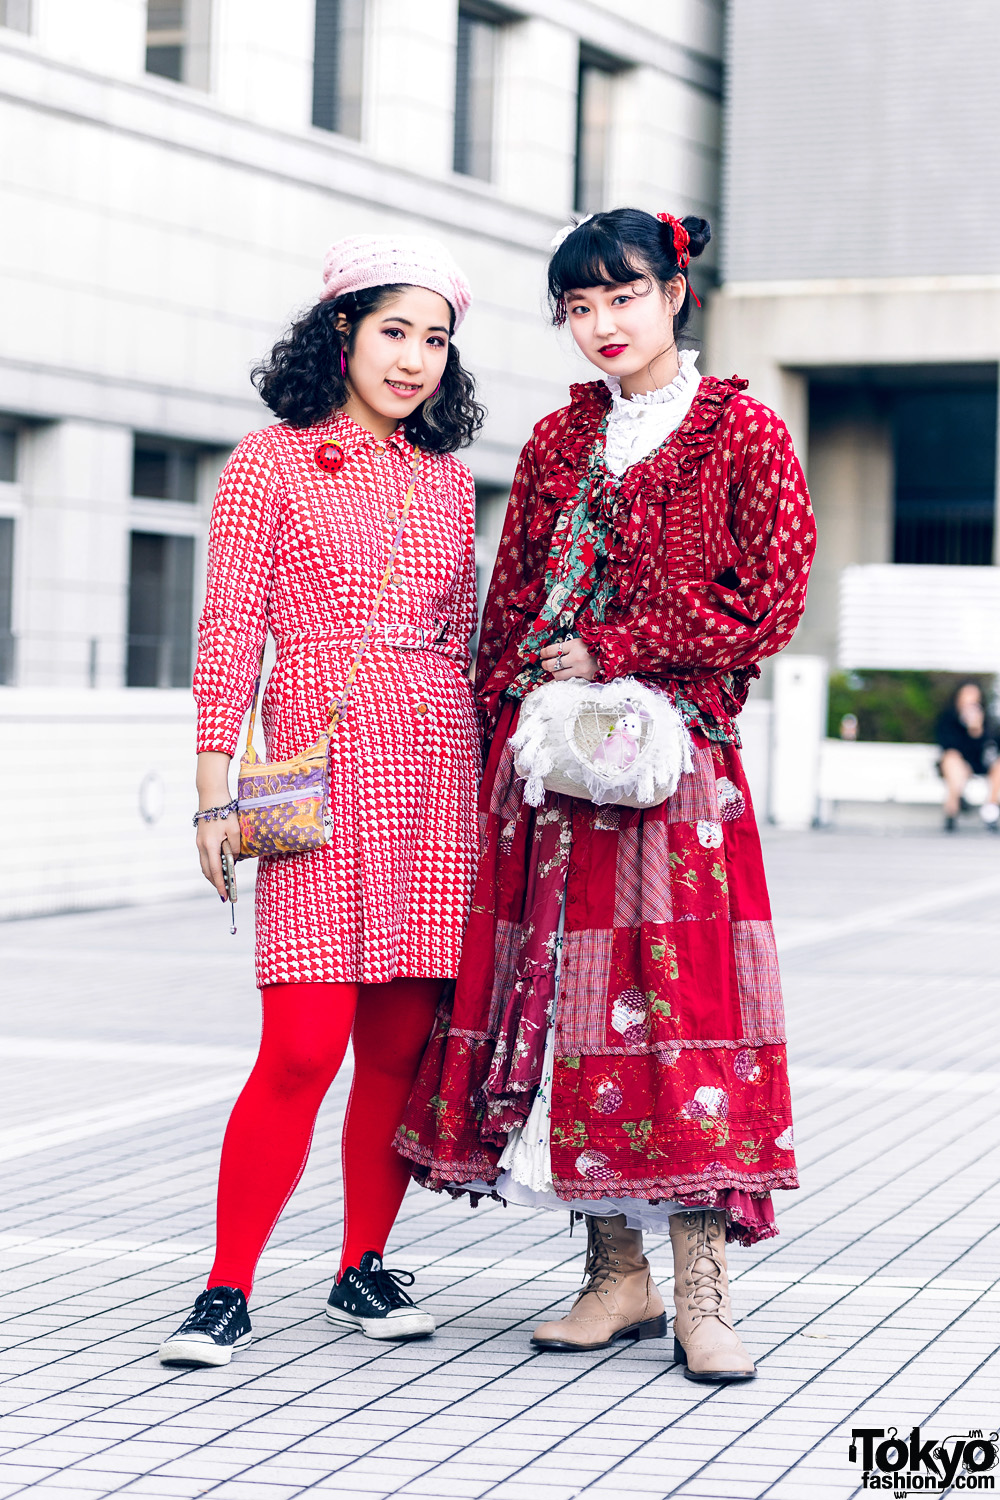 Red Tokyo Street Styles w/ Twin Buns, Knit Hat, Houndstooth Belted Dress, Floral Prints, Handmade Fashion, Pink House & Bed JW Ford